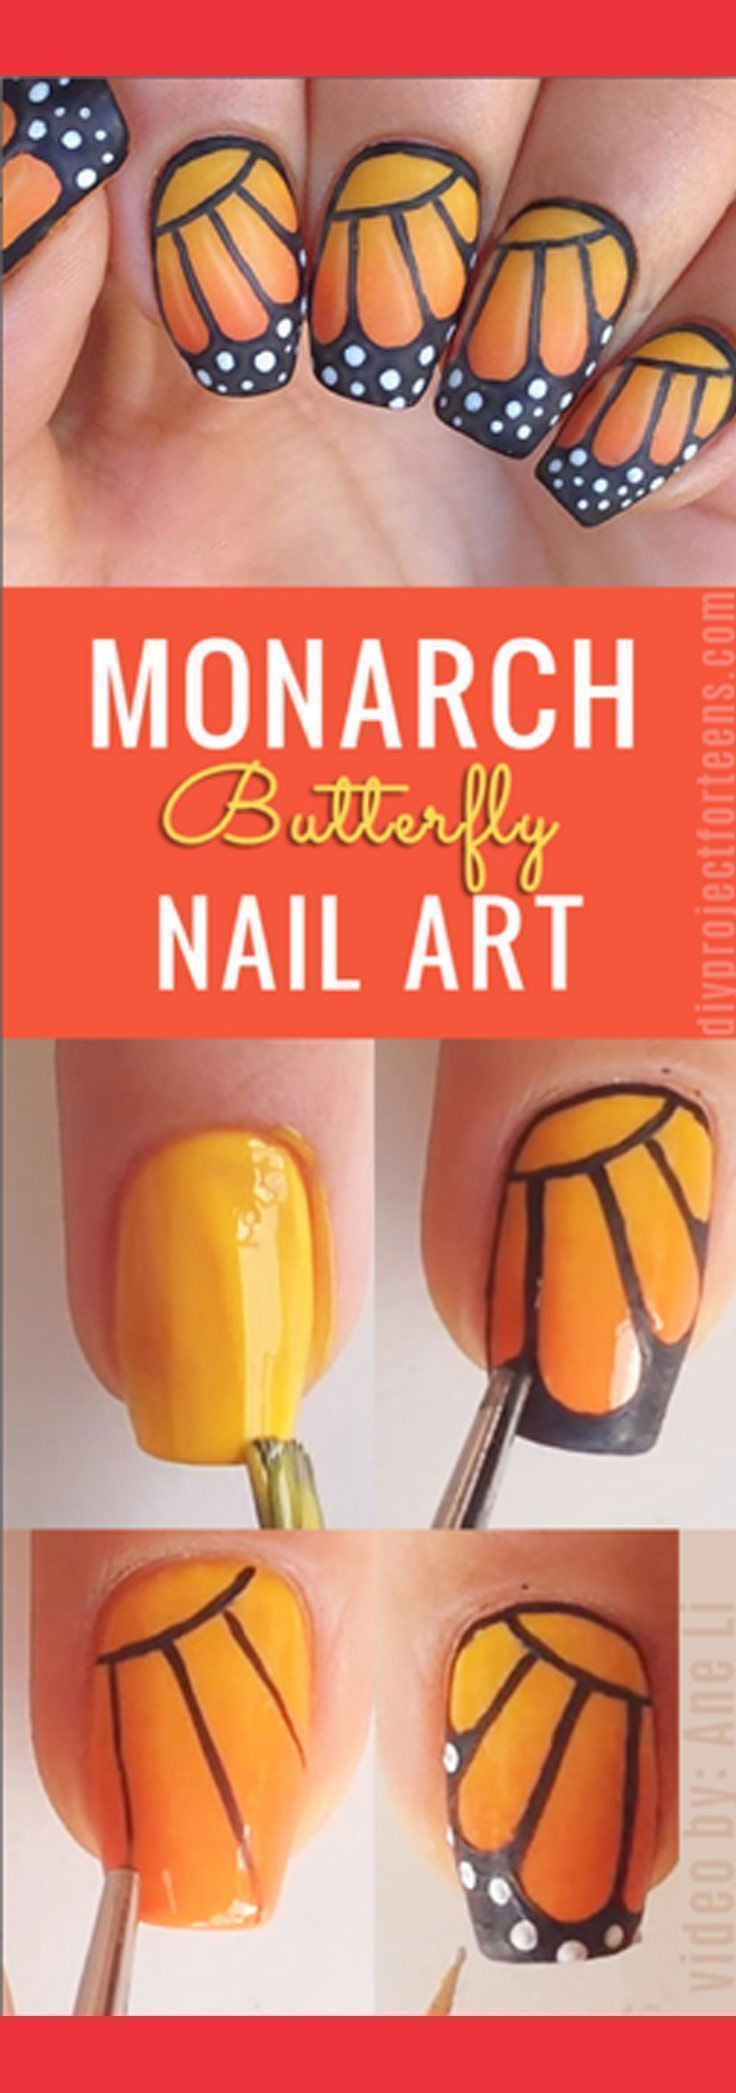 Nail art done at homeartnailsart summer glimpse beautiful summer best images about spa life on pinterest nail art designs lfc nail art prinsesfo Image collections